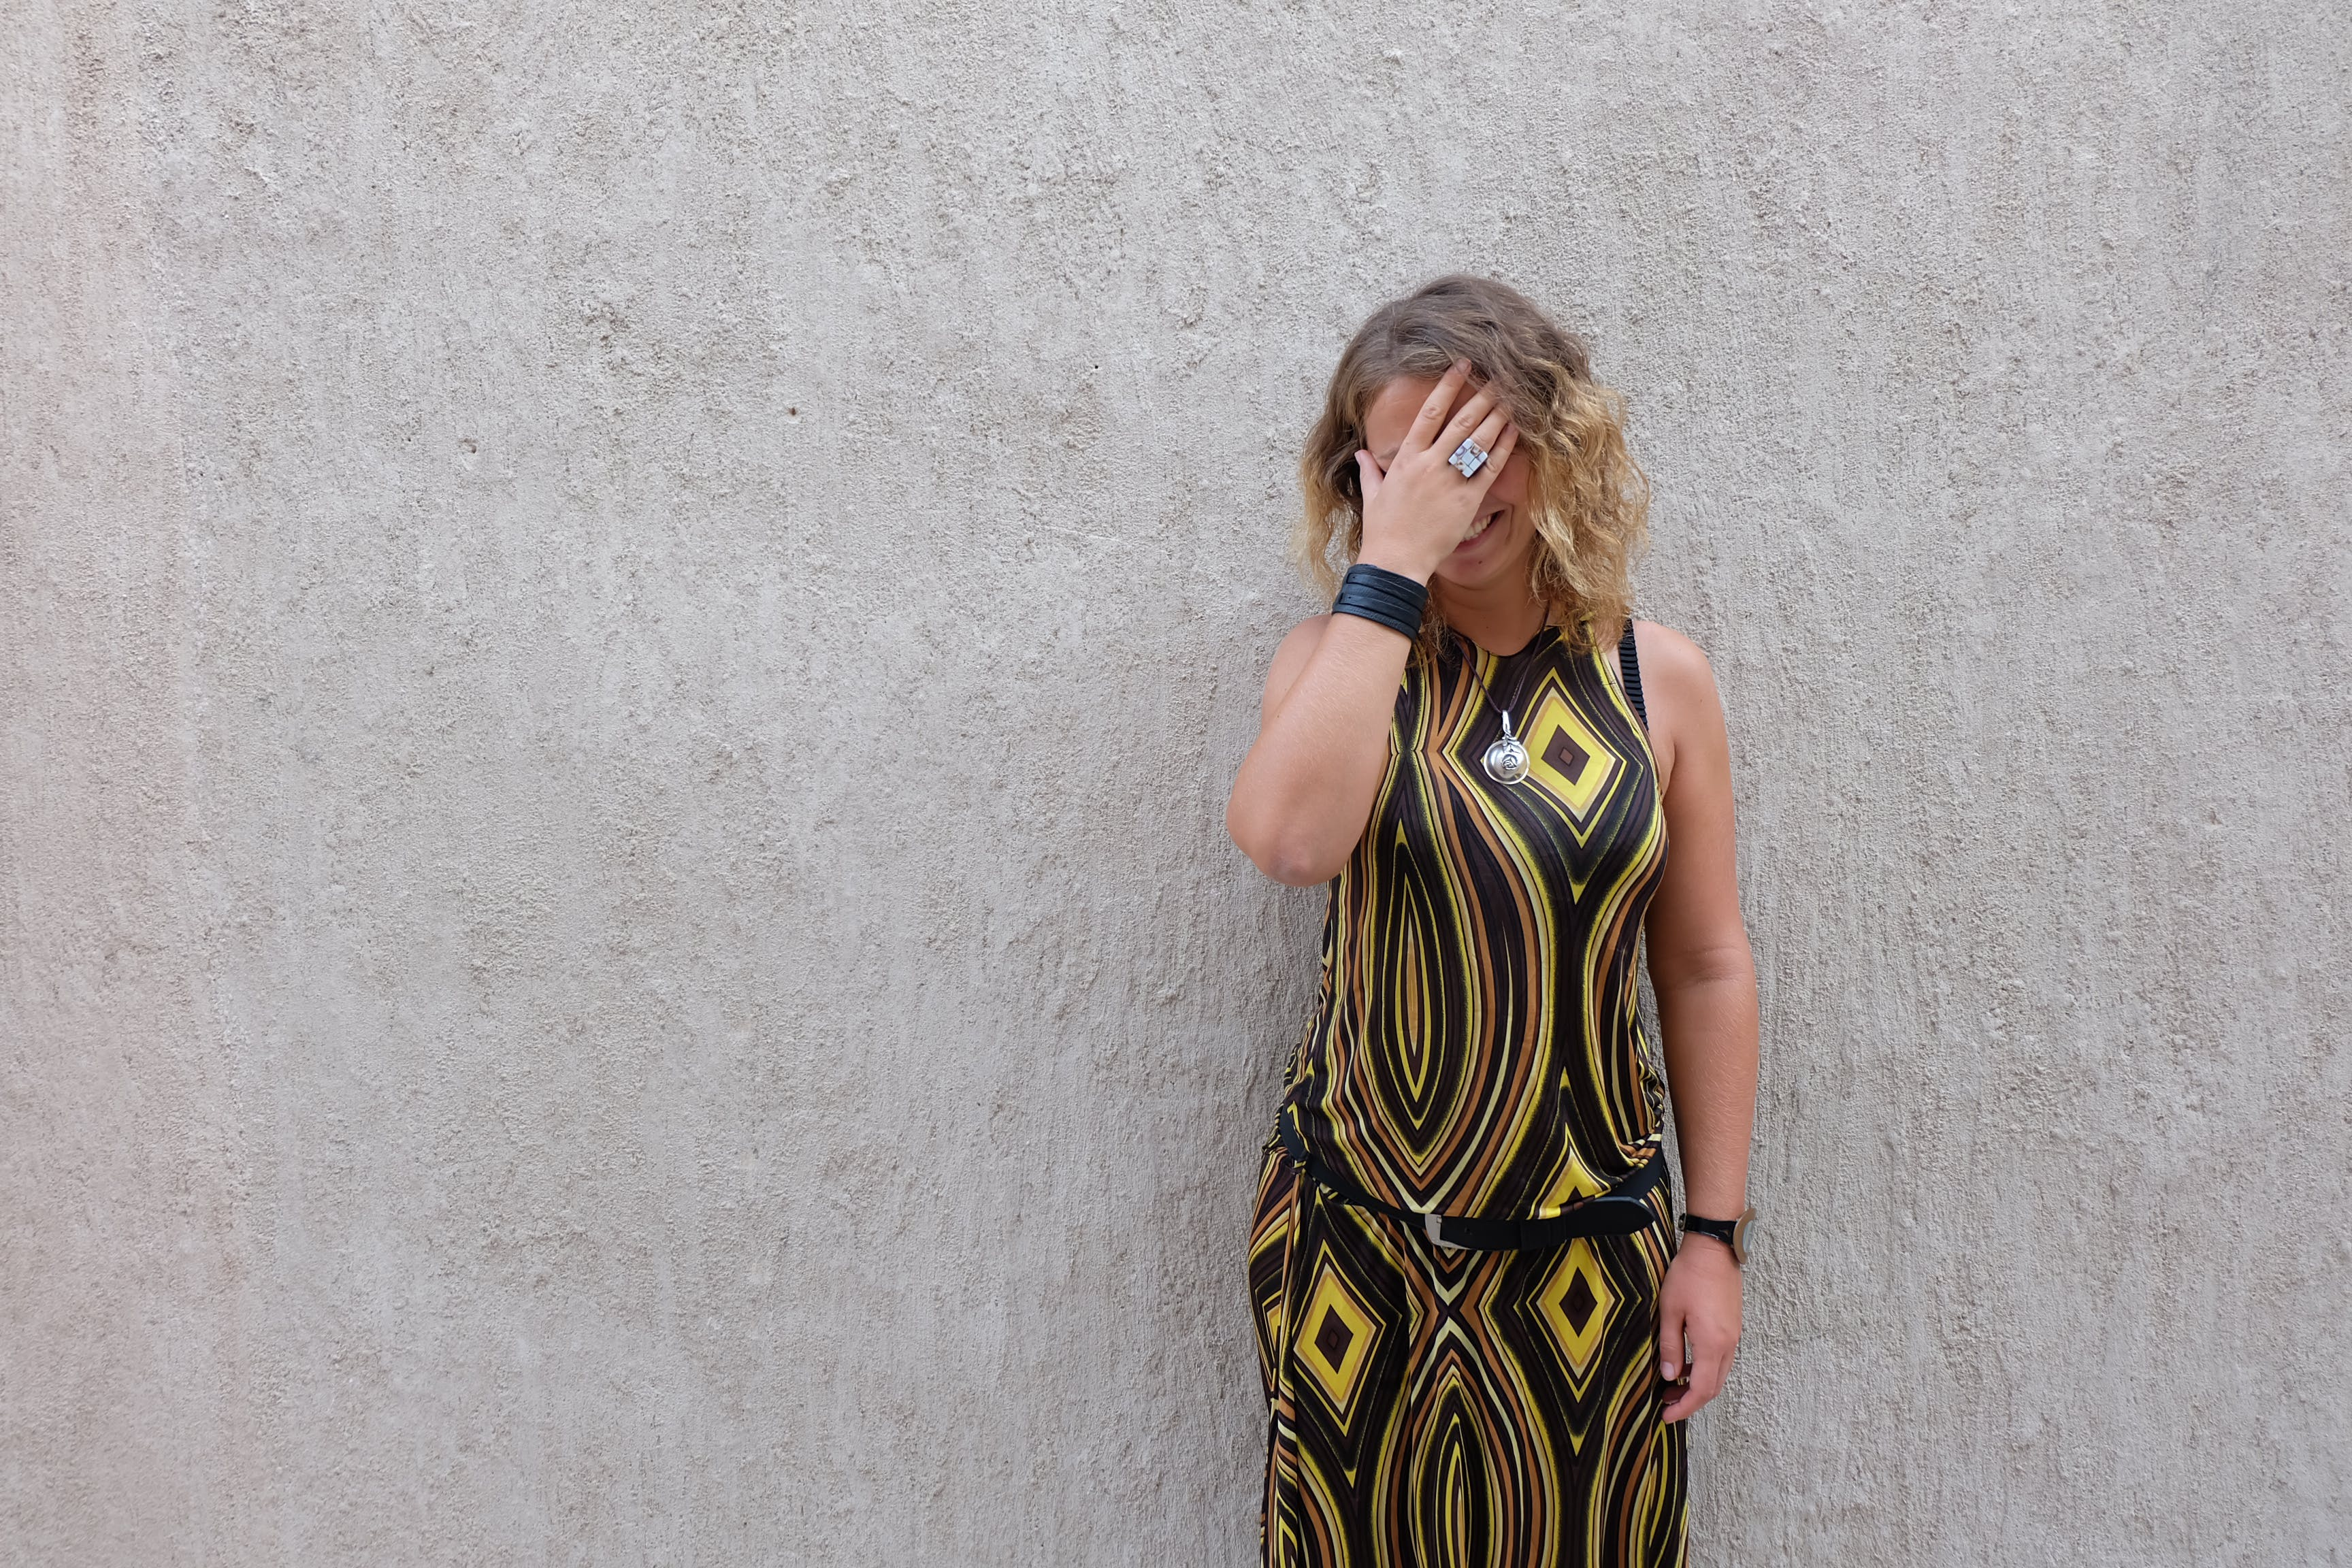 Woman Covering Face Beside Wall